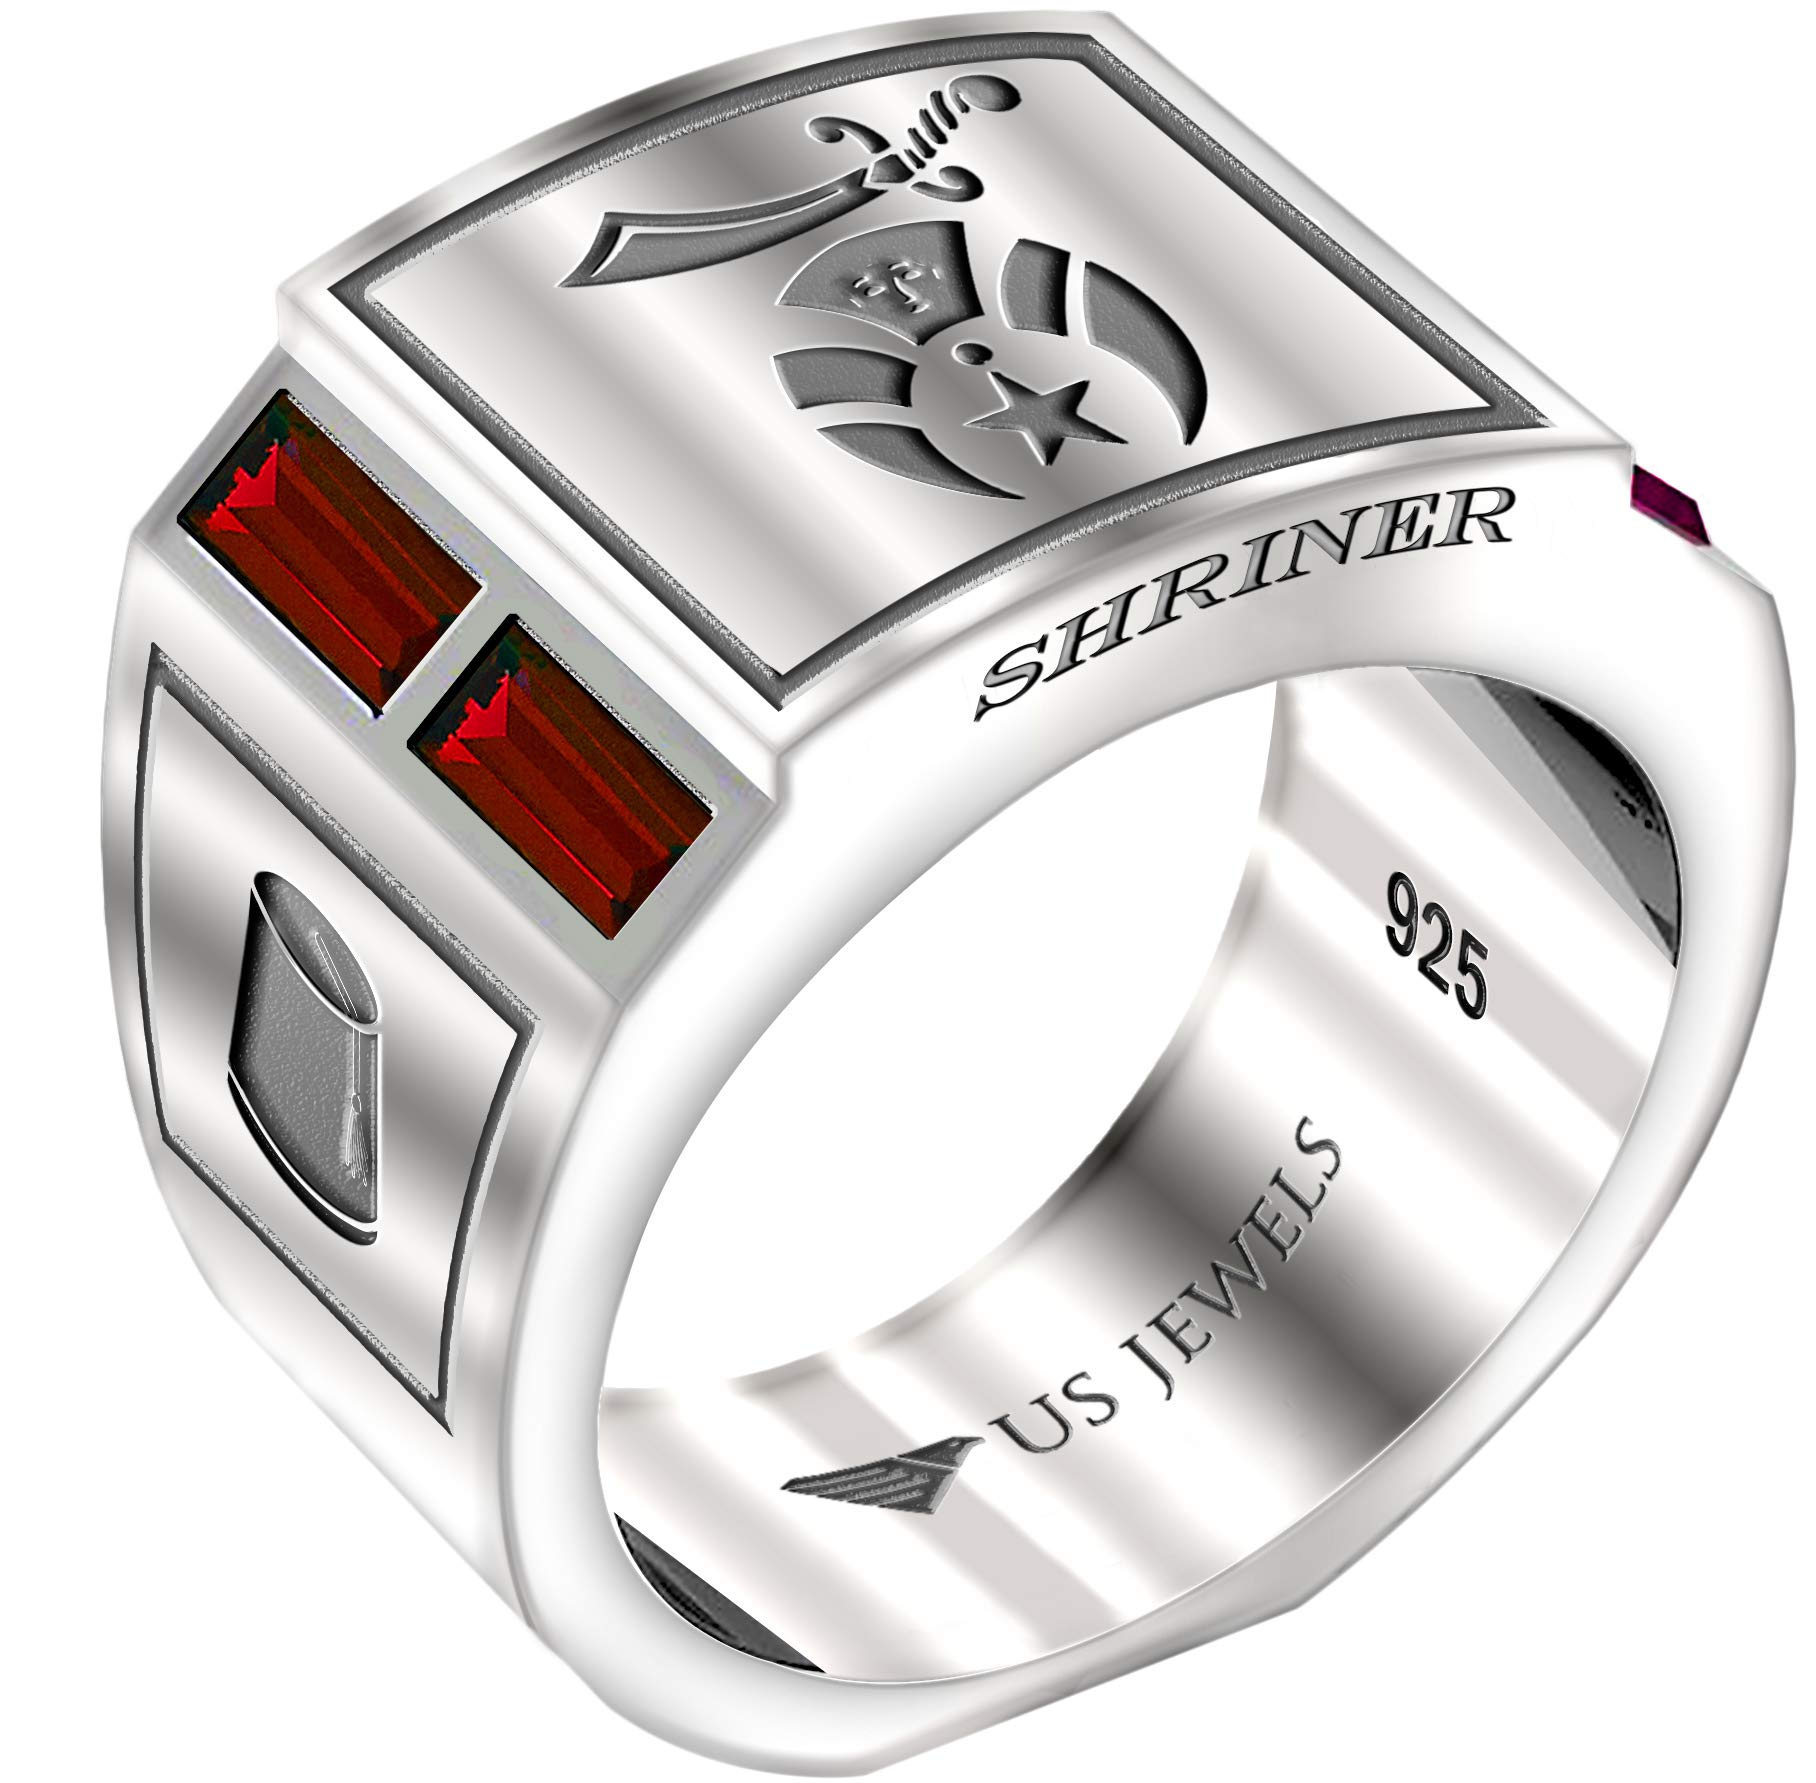 US Jewels And Gems Men's 0.925 Sterling Silver Simulated Ruby Shriner Freemason Masonic Ring, Size 12